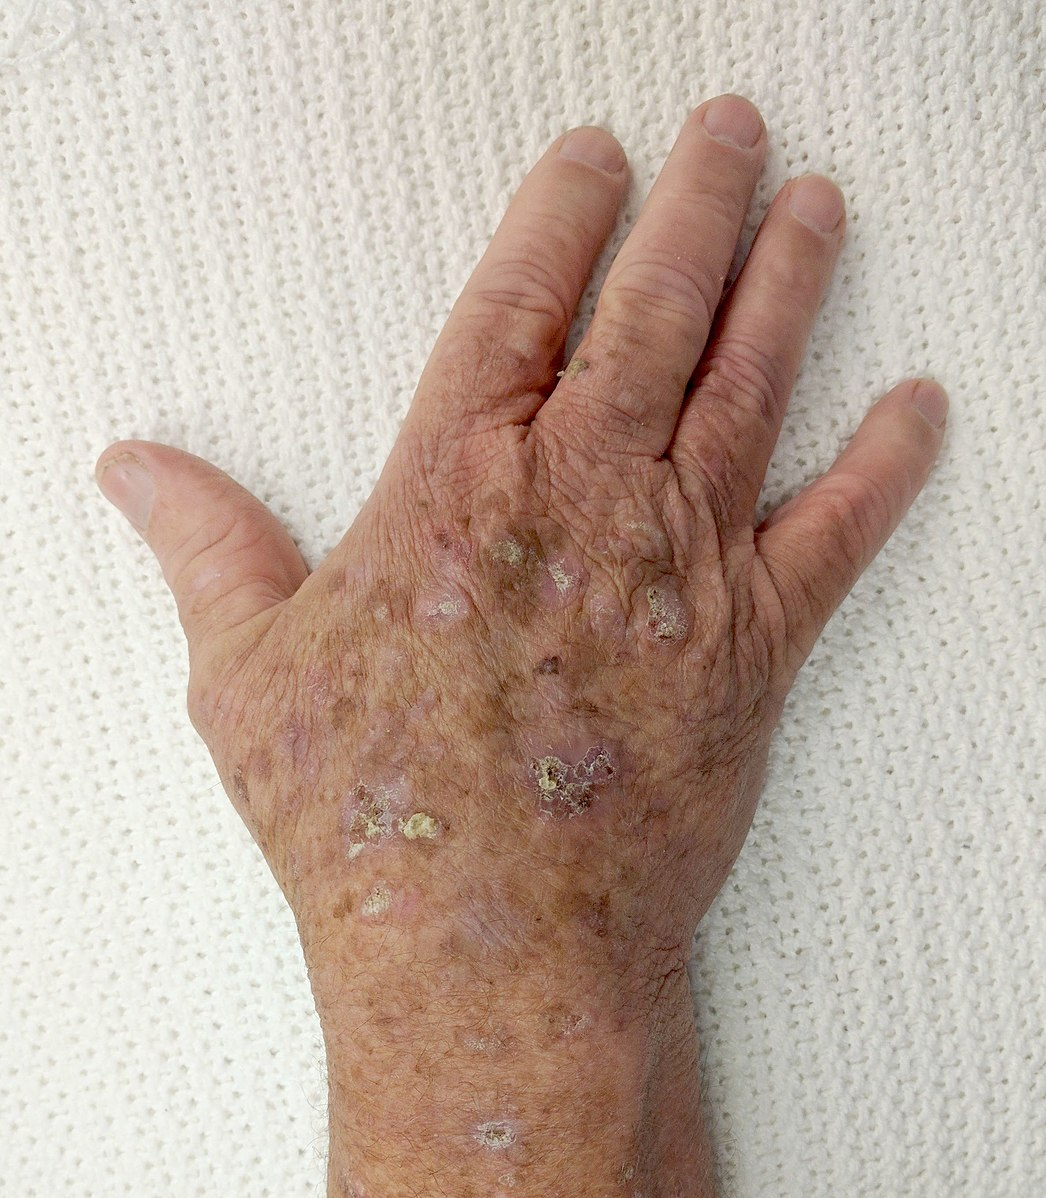 Difference Between Actinic Keratosis and Psoriasis